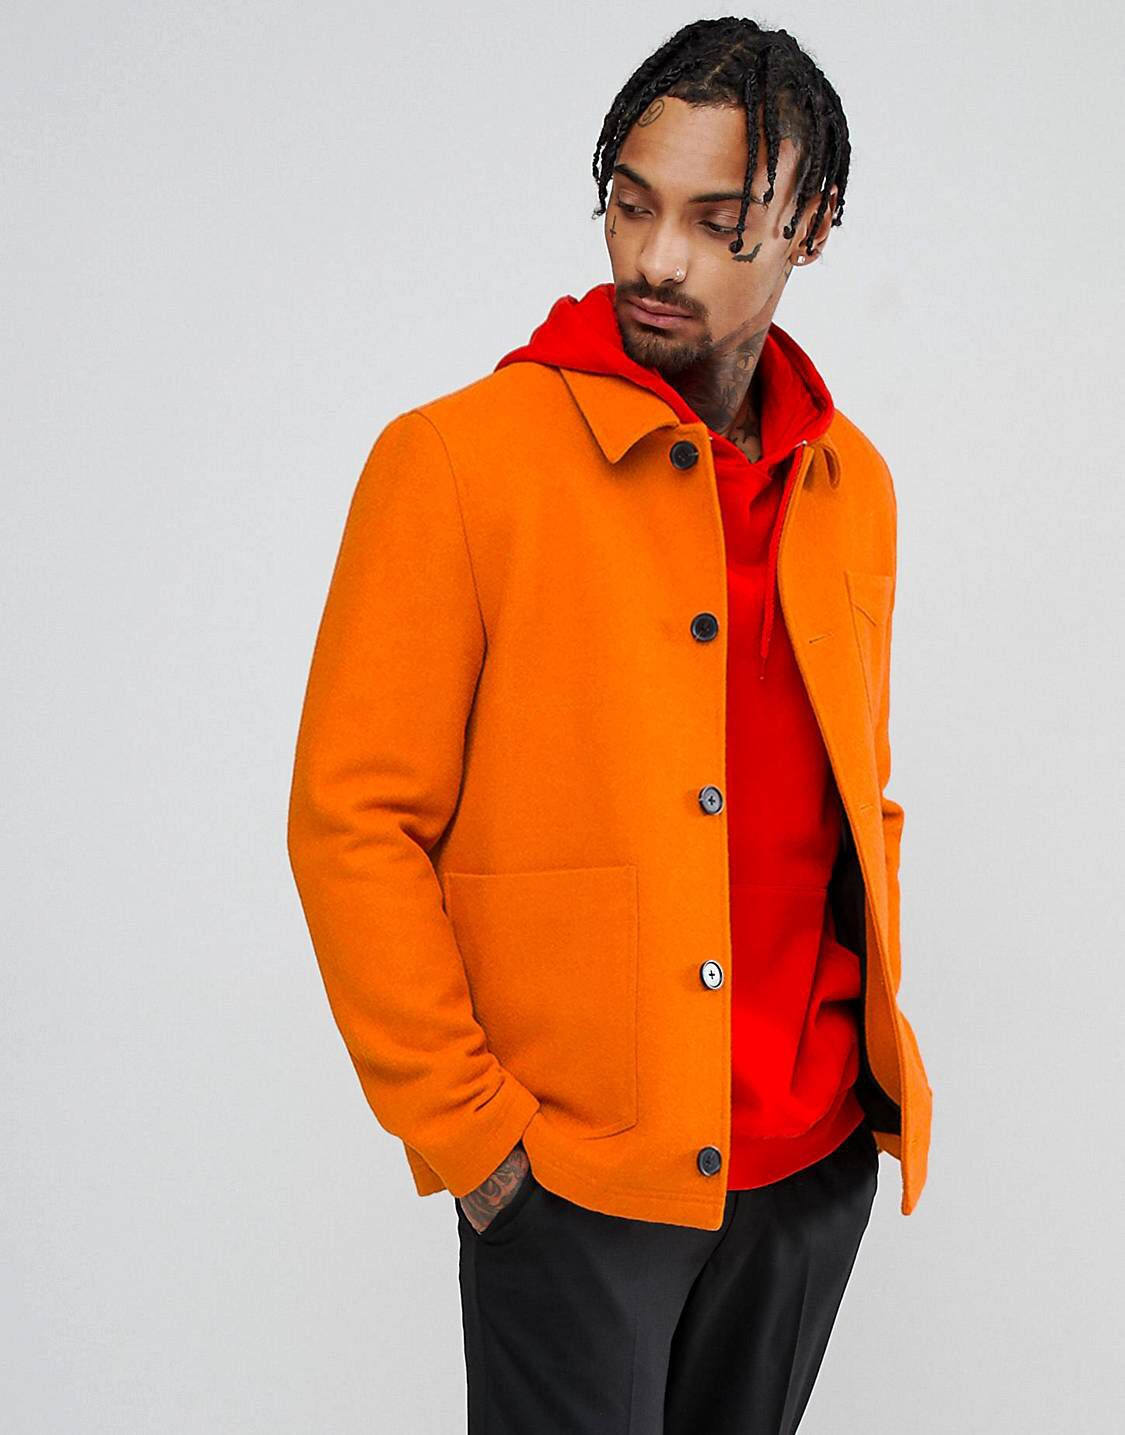 LOVE this from ASOS! Mens outfits, Latest fashion